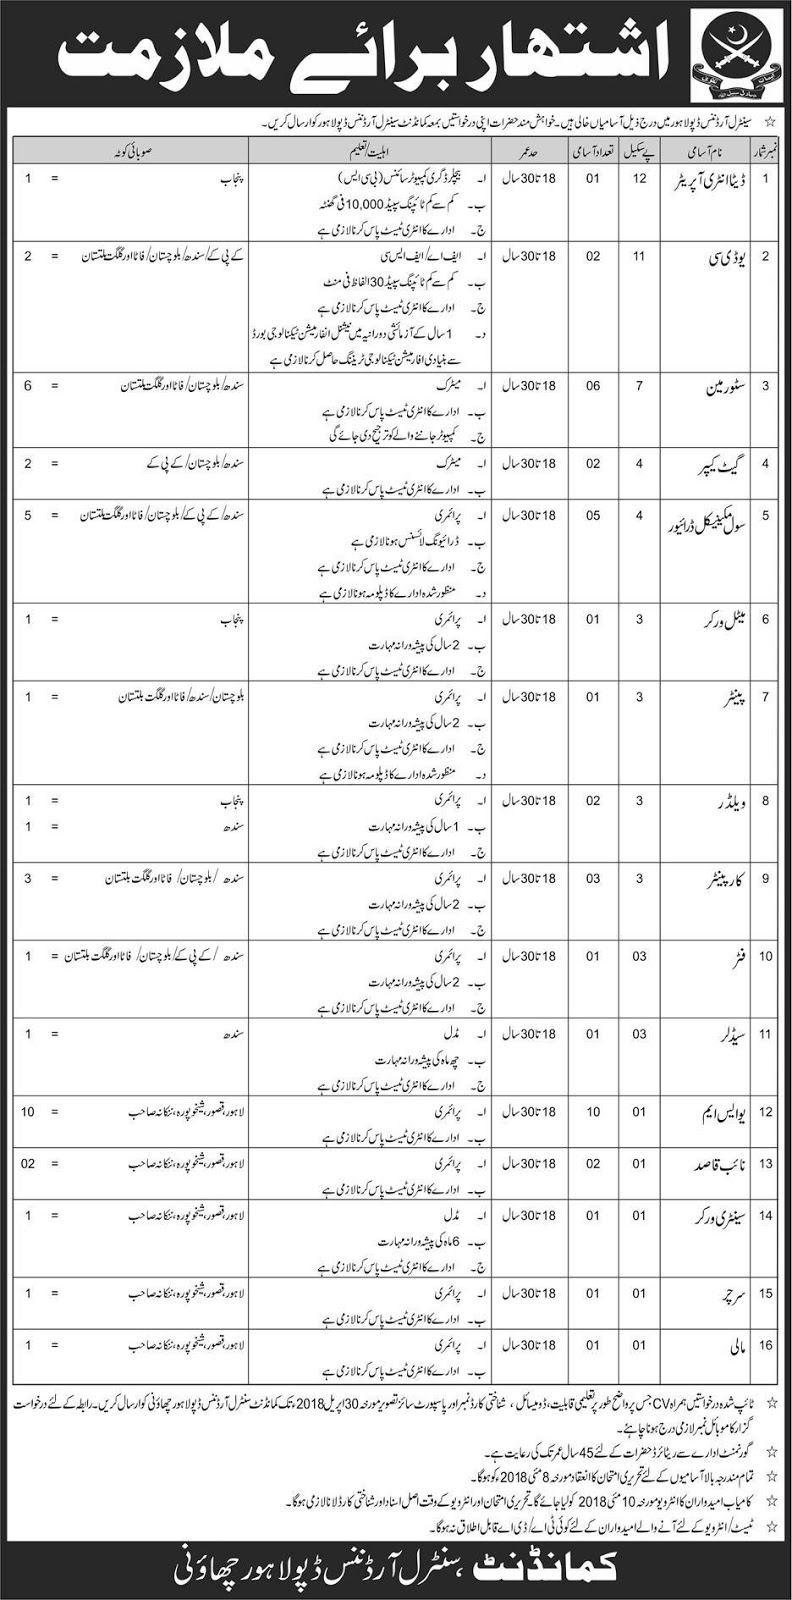 Central Ordnance Depot Pakistan Army Jobs (40 Positions)